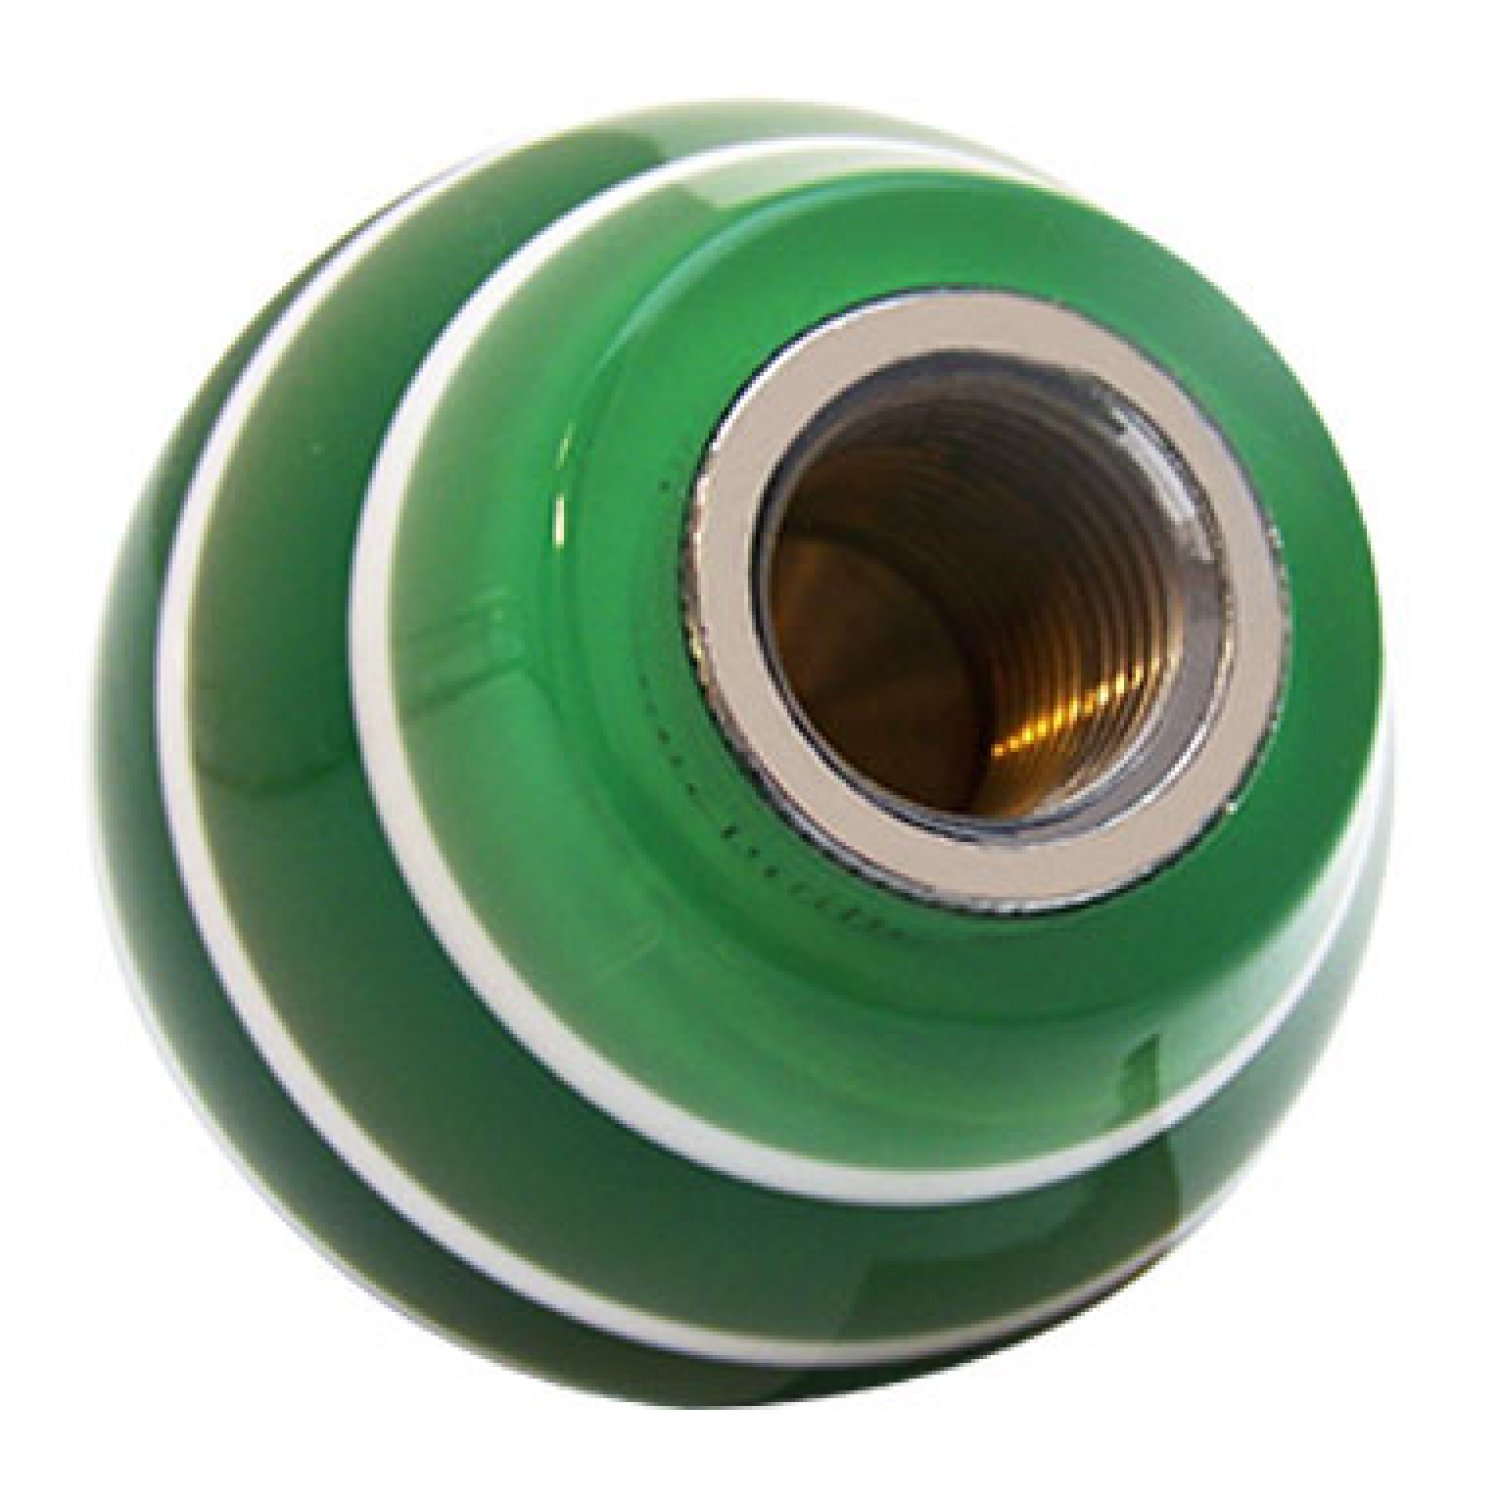 Yellow Shift Pattern 38n American Shifter 127119 Green Stripe Shift Knob with M16 x 1.5 Insert